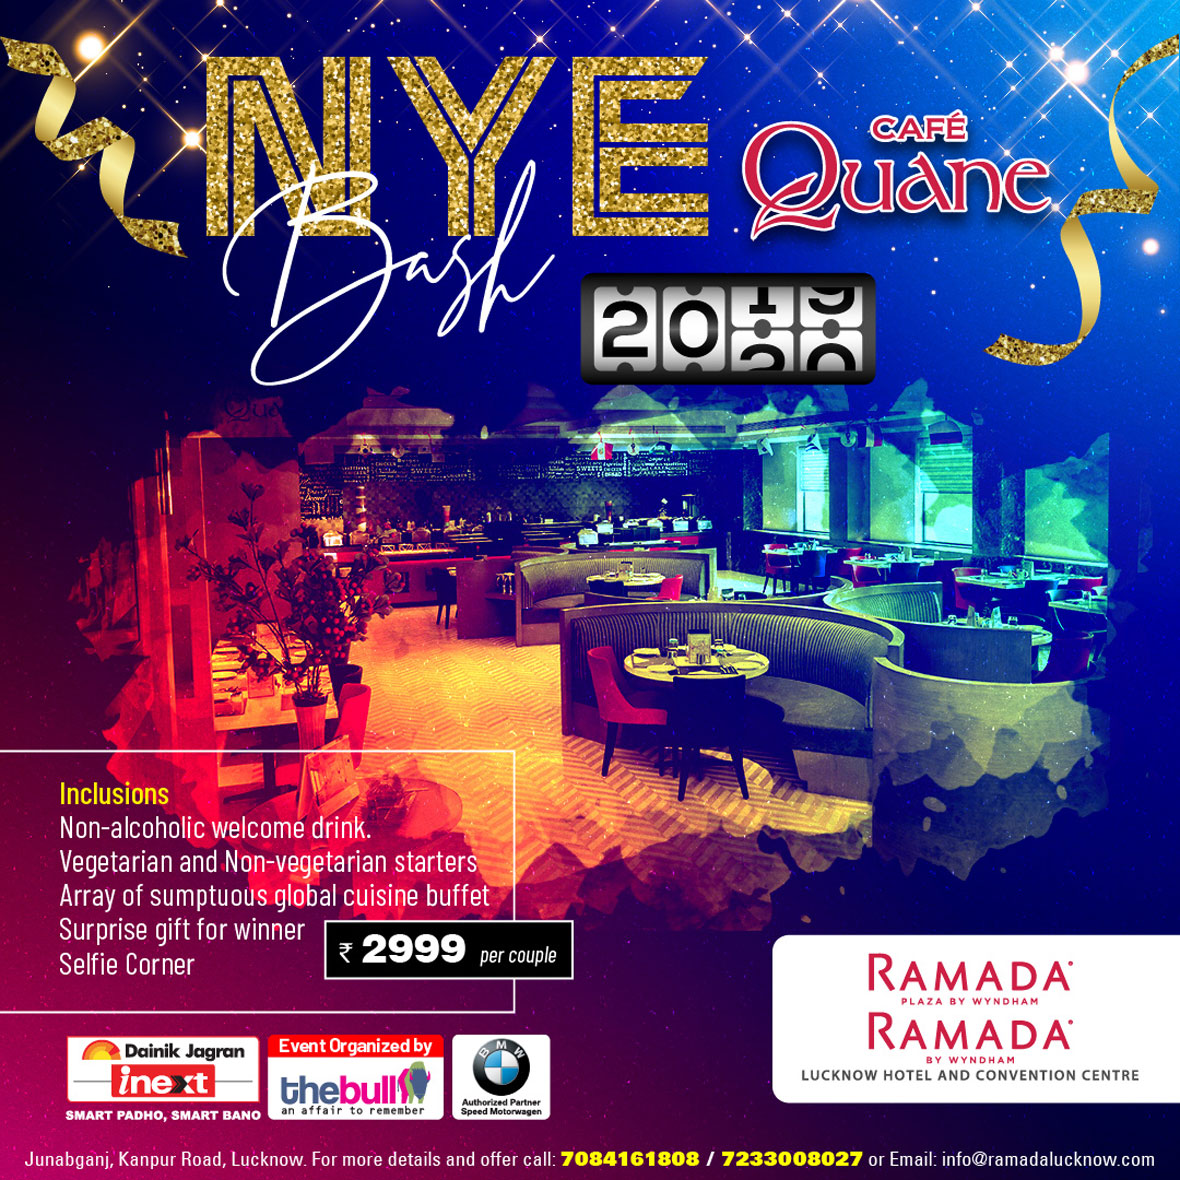 Cafe-Quane-New-year-party-Lucknow-2020